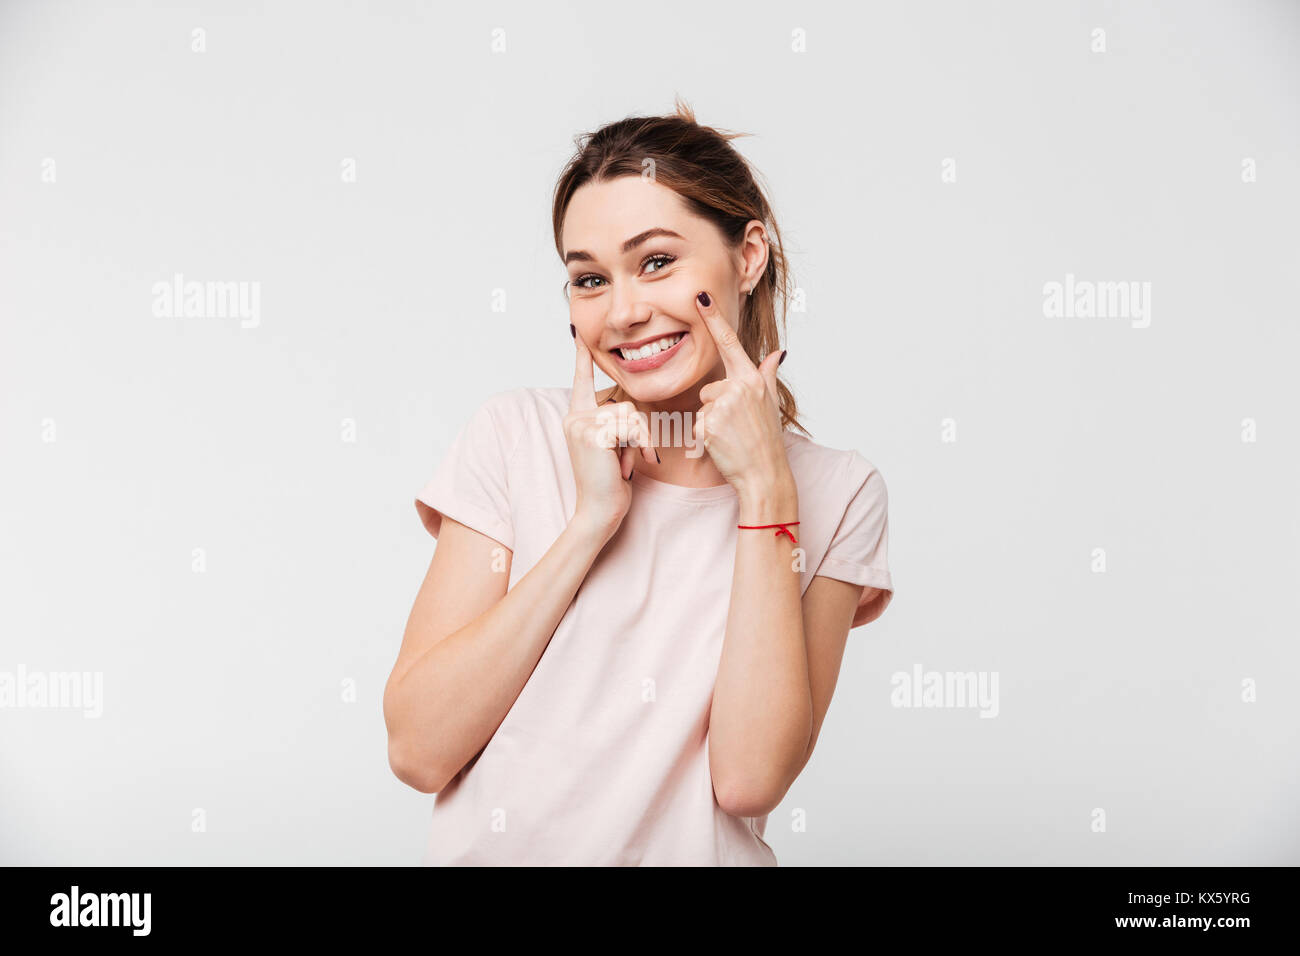 Portrait of a smiling cheerful girl grimacing and looking at camera isolated over white background - Stock Image